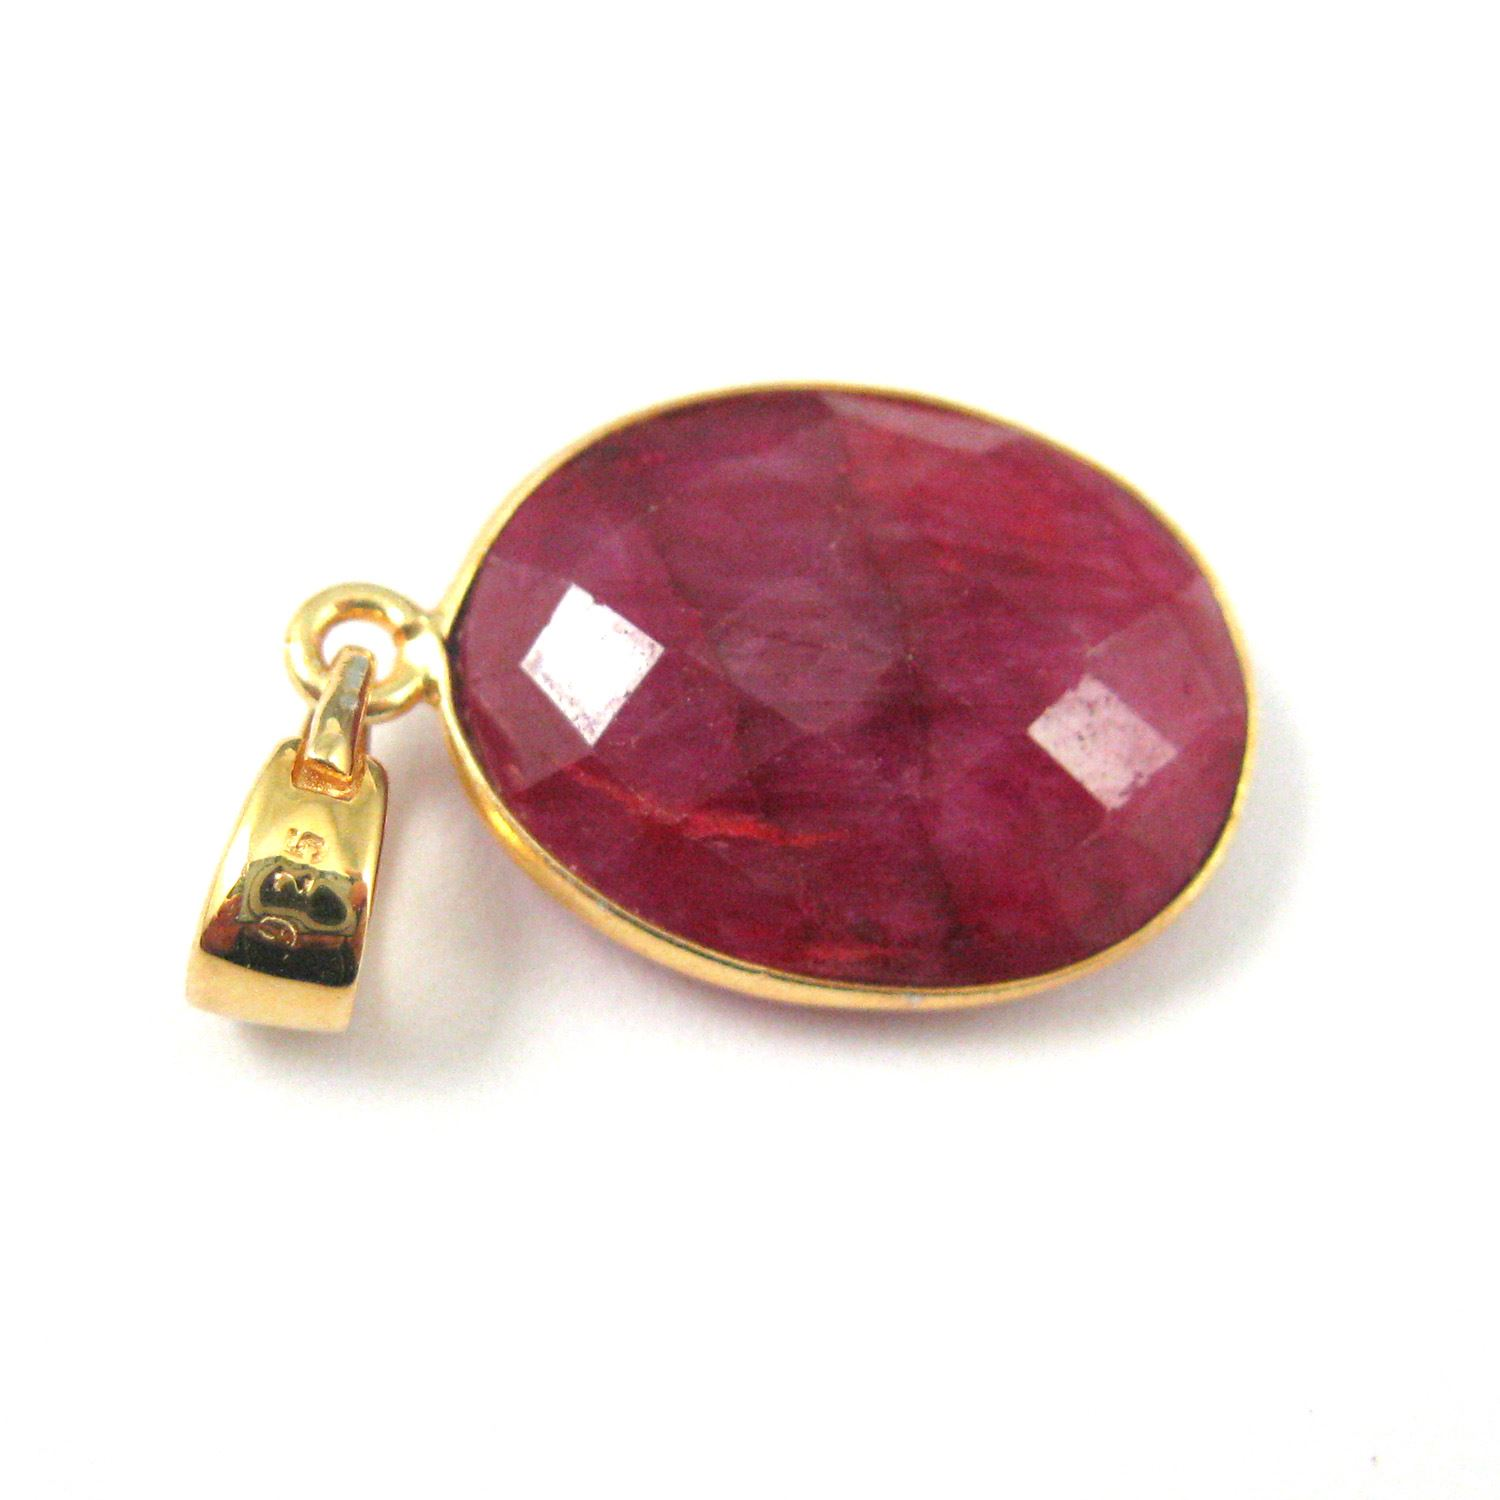 Bezel Gemstone Pendant with Bail - Gold plated Sterling Silver Oval Gem Pendant - Ready for Necklace - 28mm - Ruby Dyed